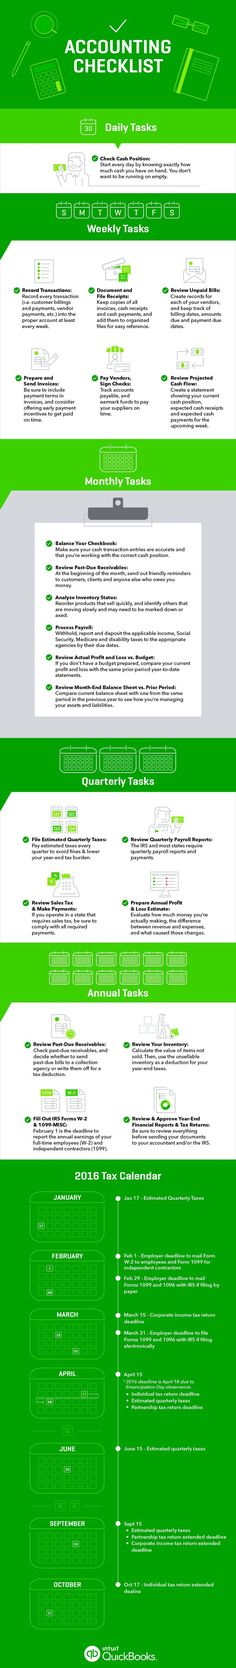 Small Business Accounting Checklist and Infographic: 21 Things to Do and When to Do Them | QuickBooks